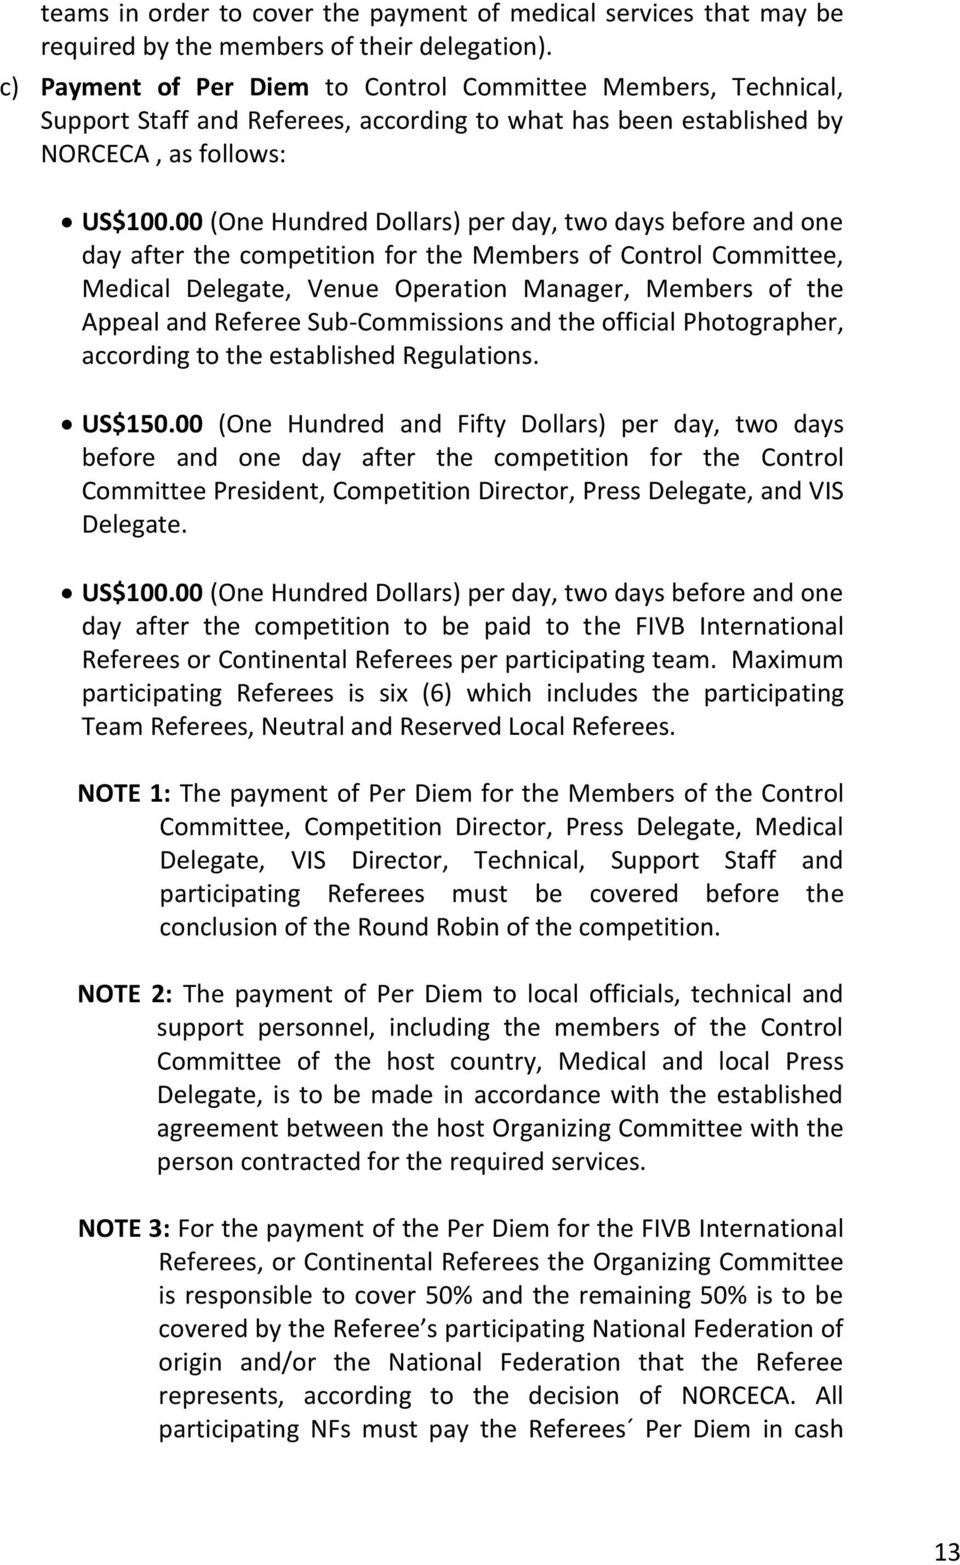 00 (One Hundred Dollars) per day, two days before and one day after the competition for the Members of Control Committee, Medical Delegate, Venue Operation Manager, Members of the Appeal and Referee